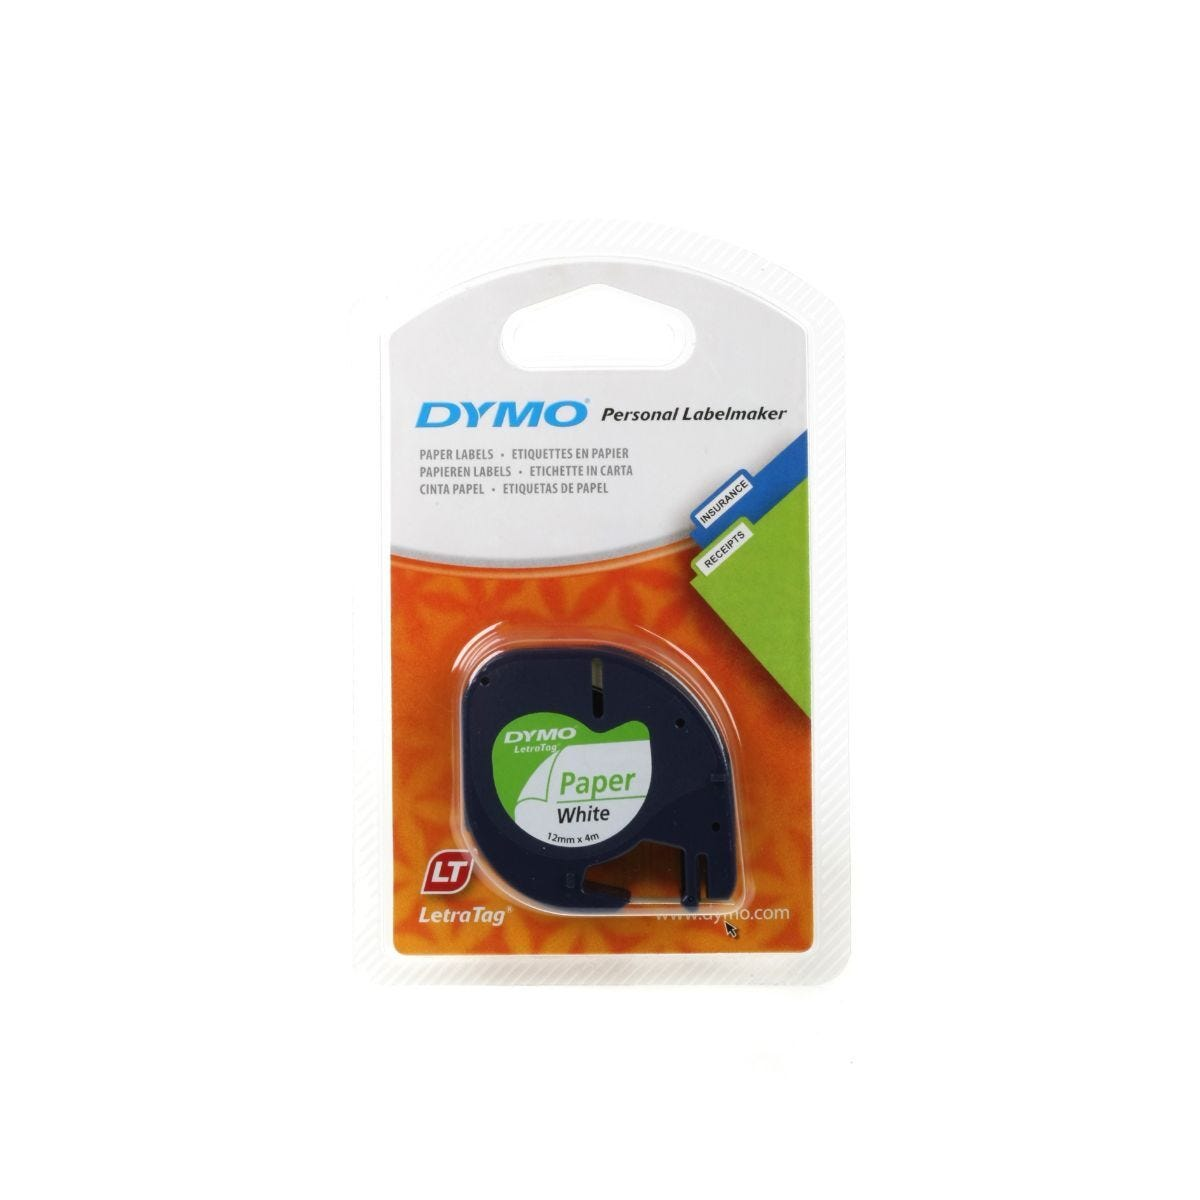 Dymo Letratag Tape 12mm x 4m Paper